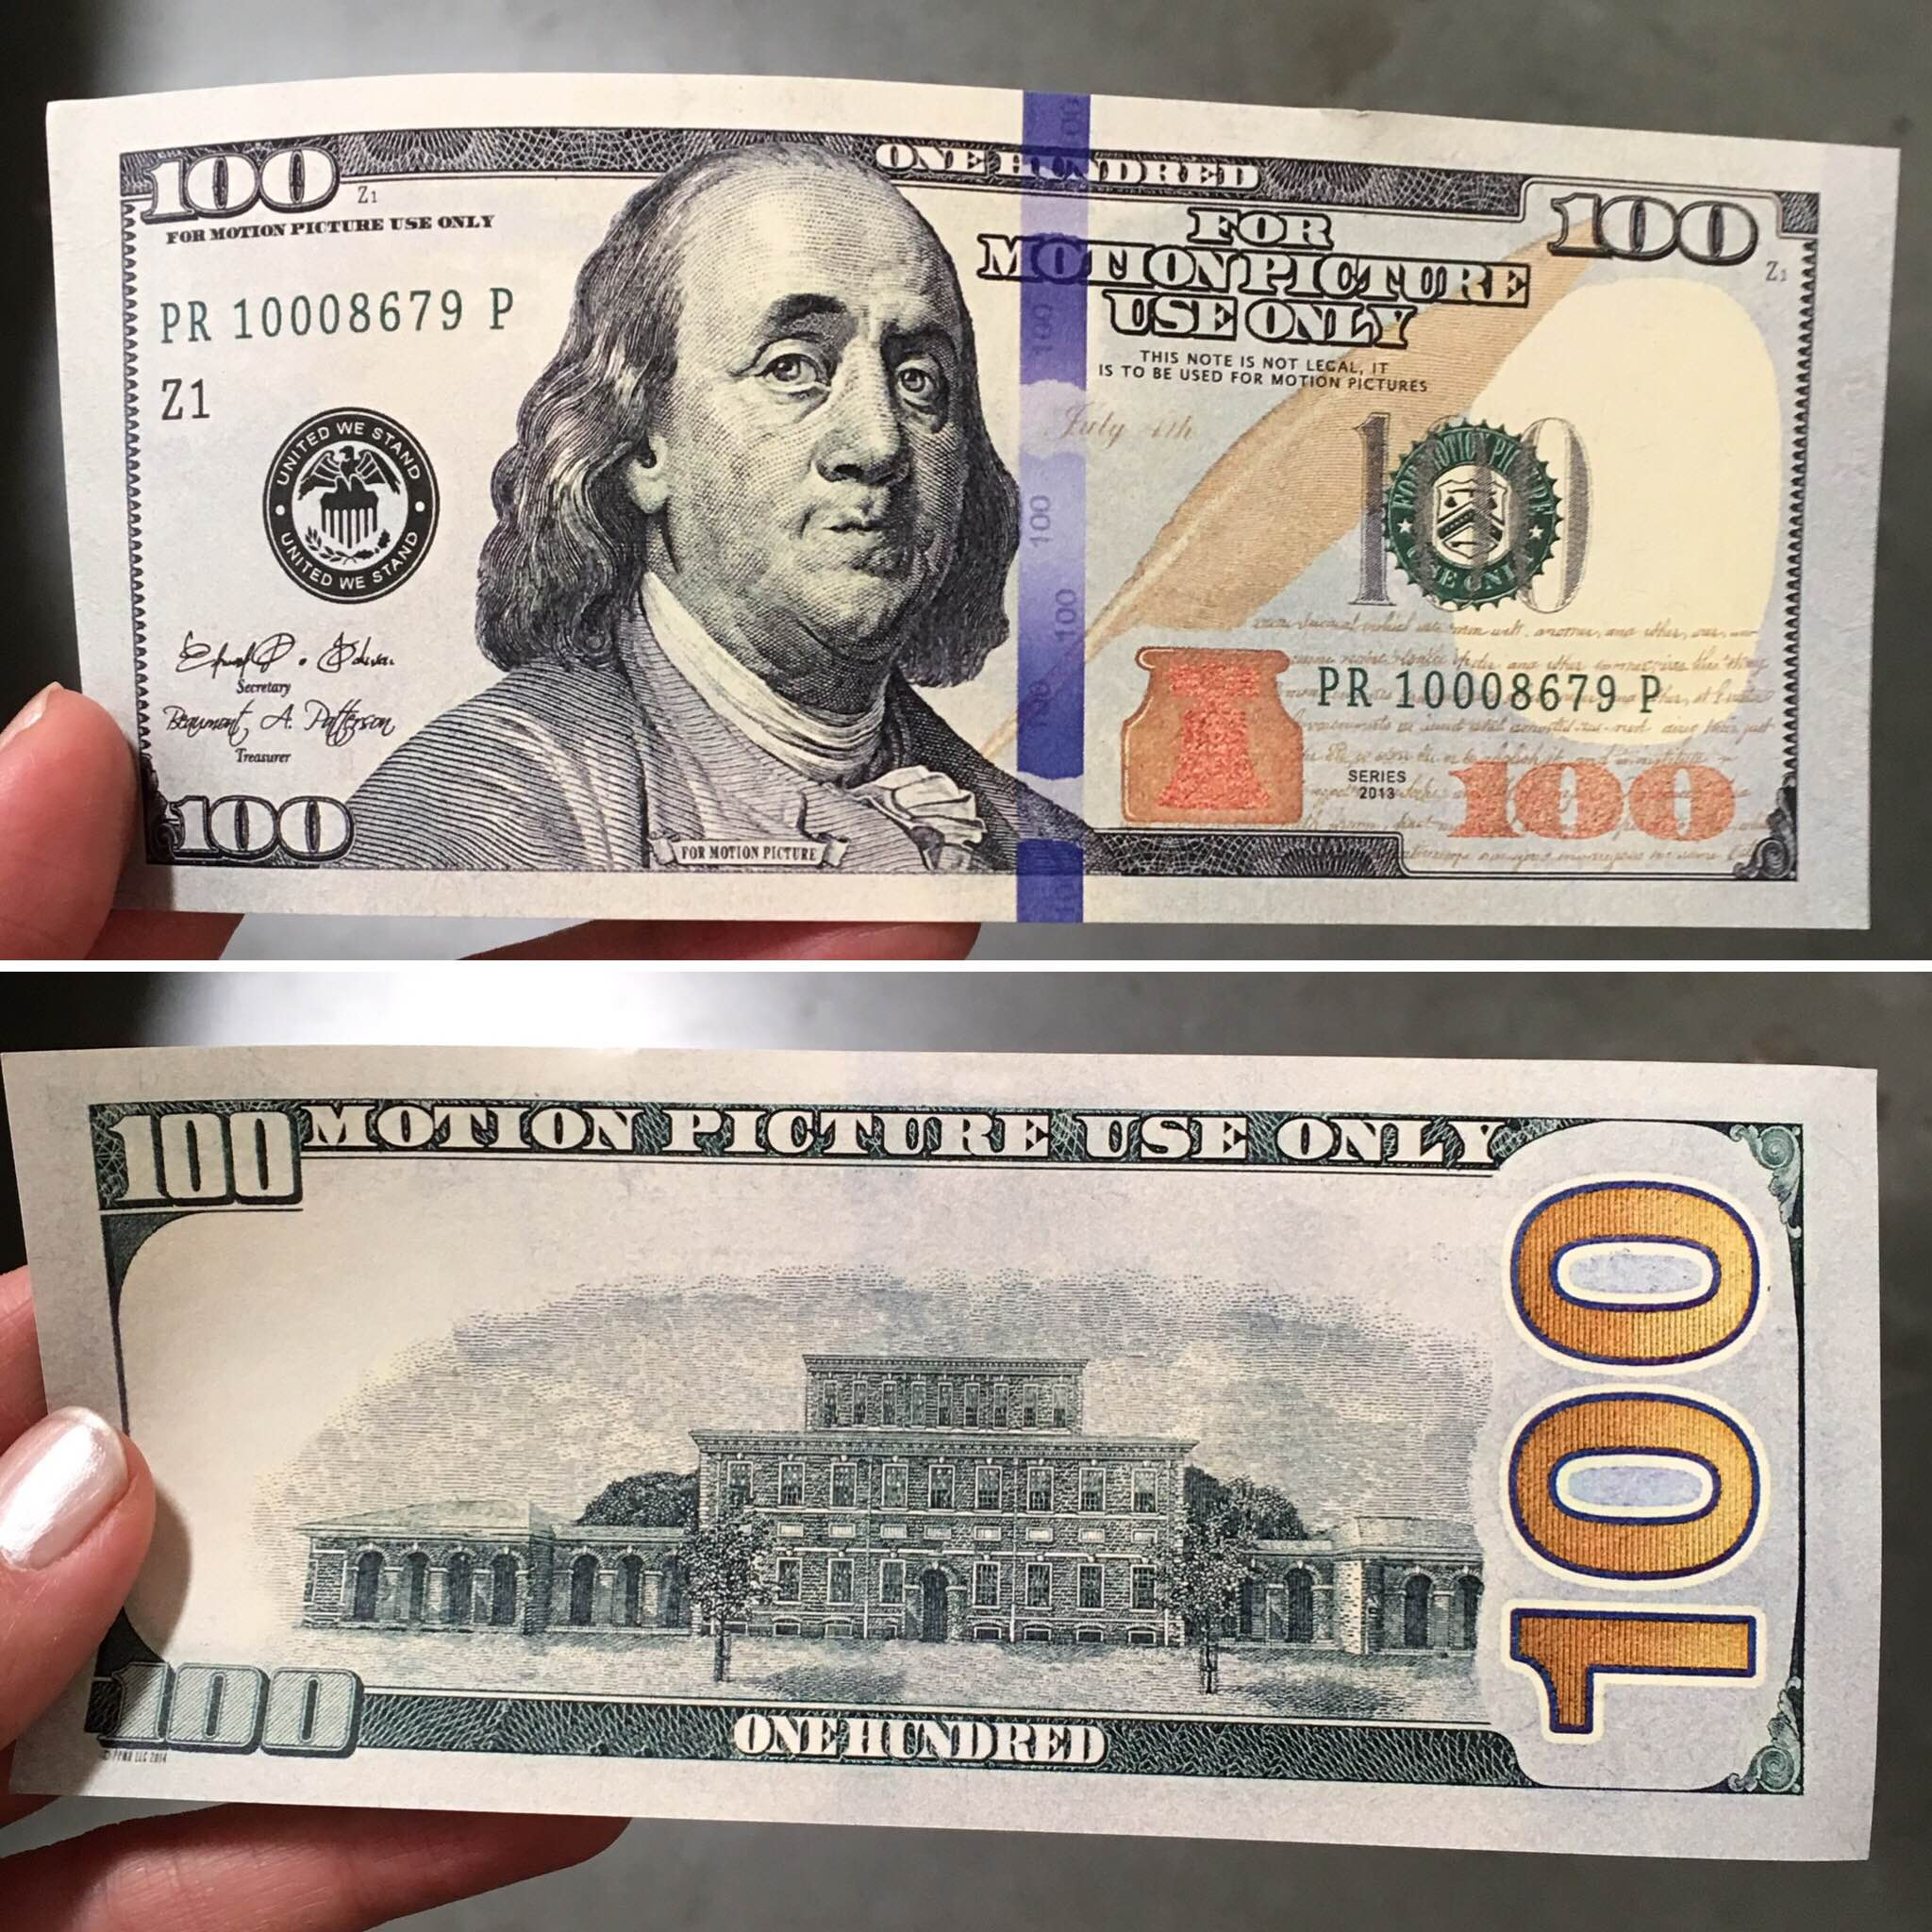 Biggest counterfeit money stories january may 2016 for Fake money images